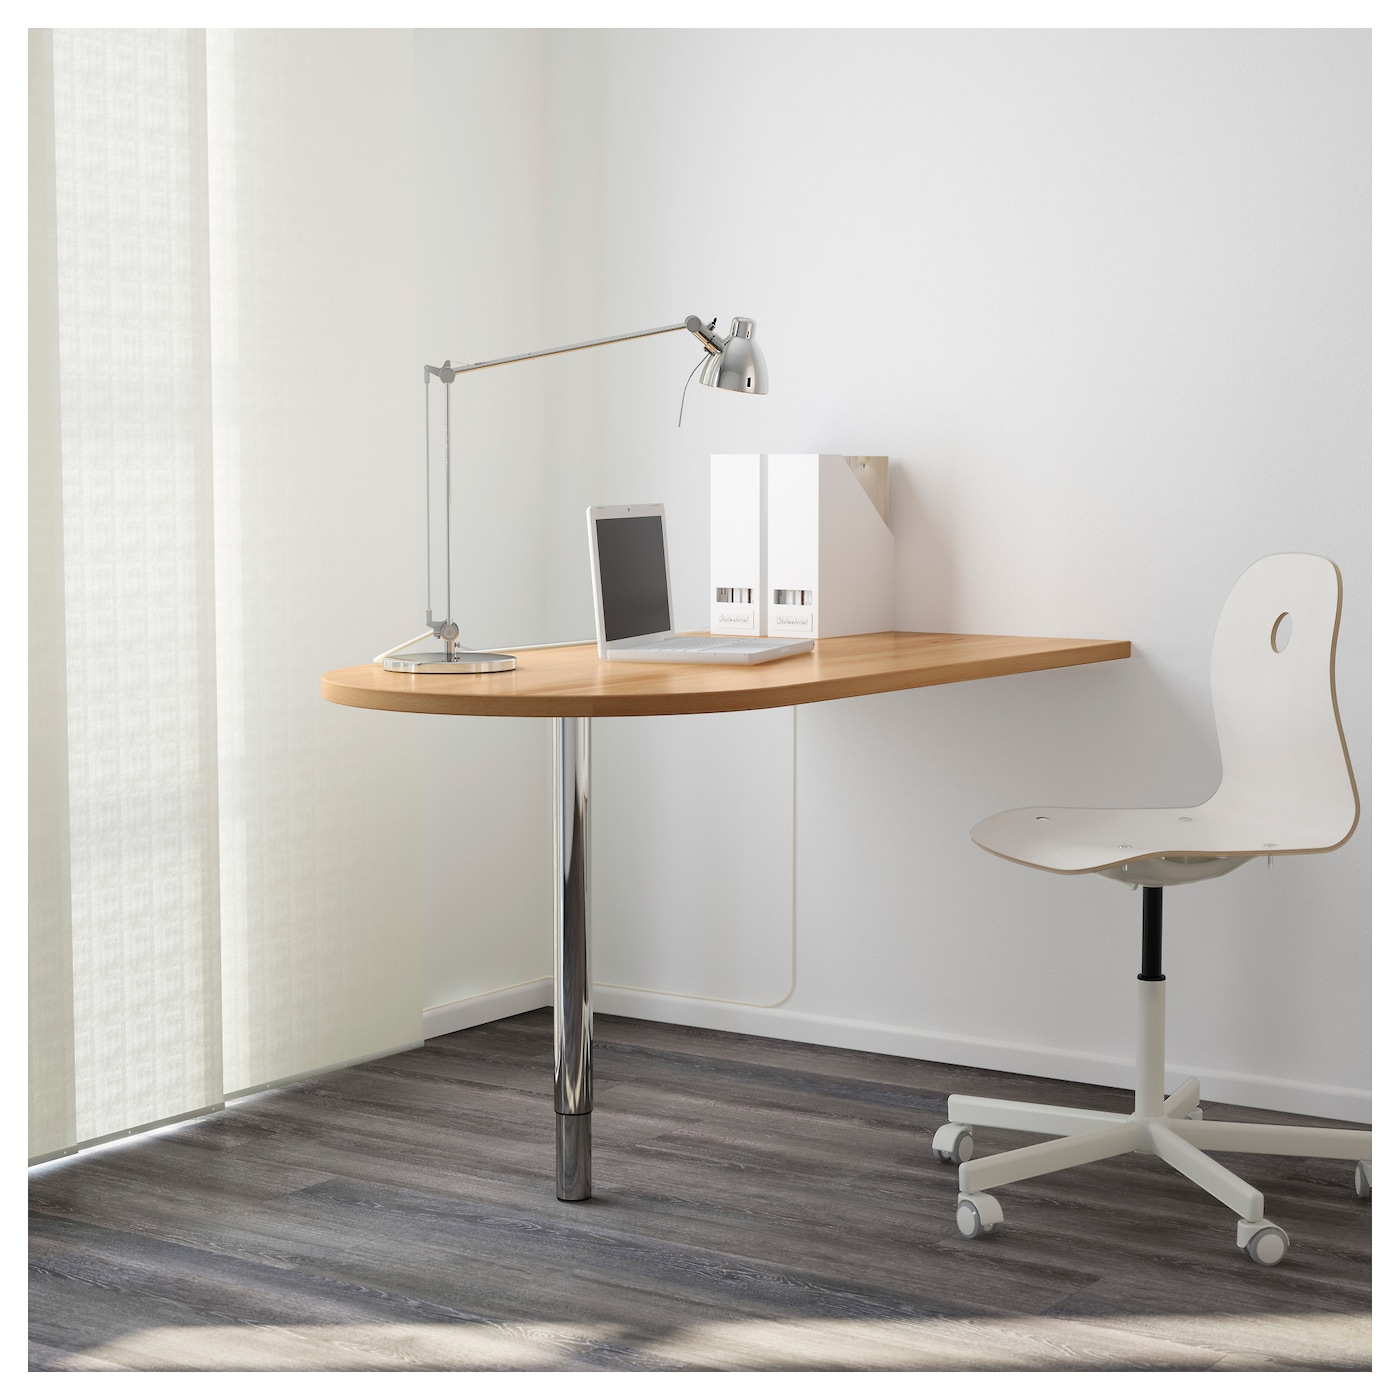 IKEA GERTON table top Solid wood is a durable natural material.